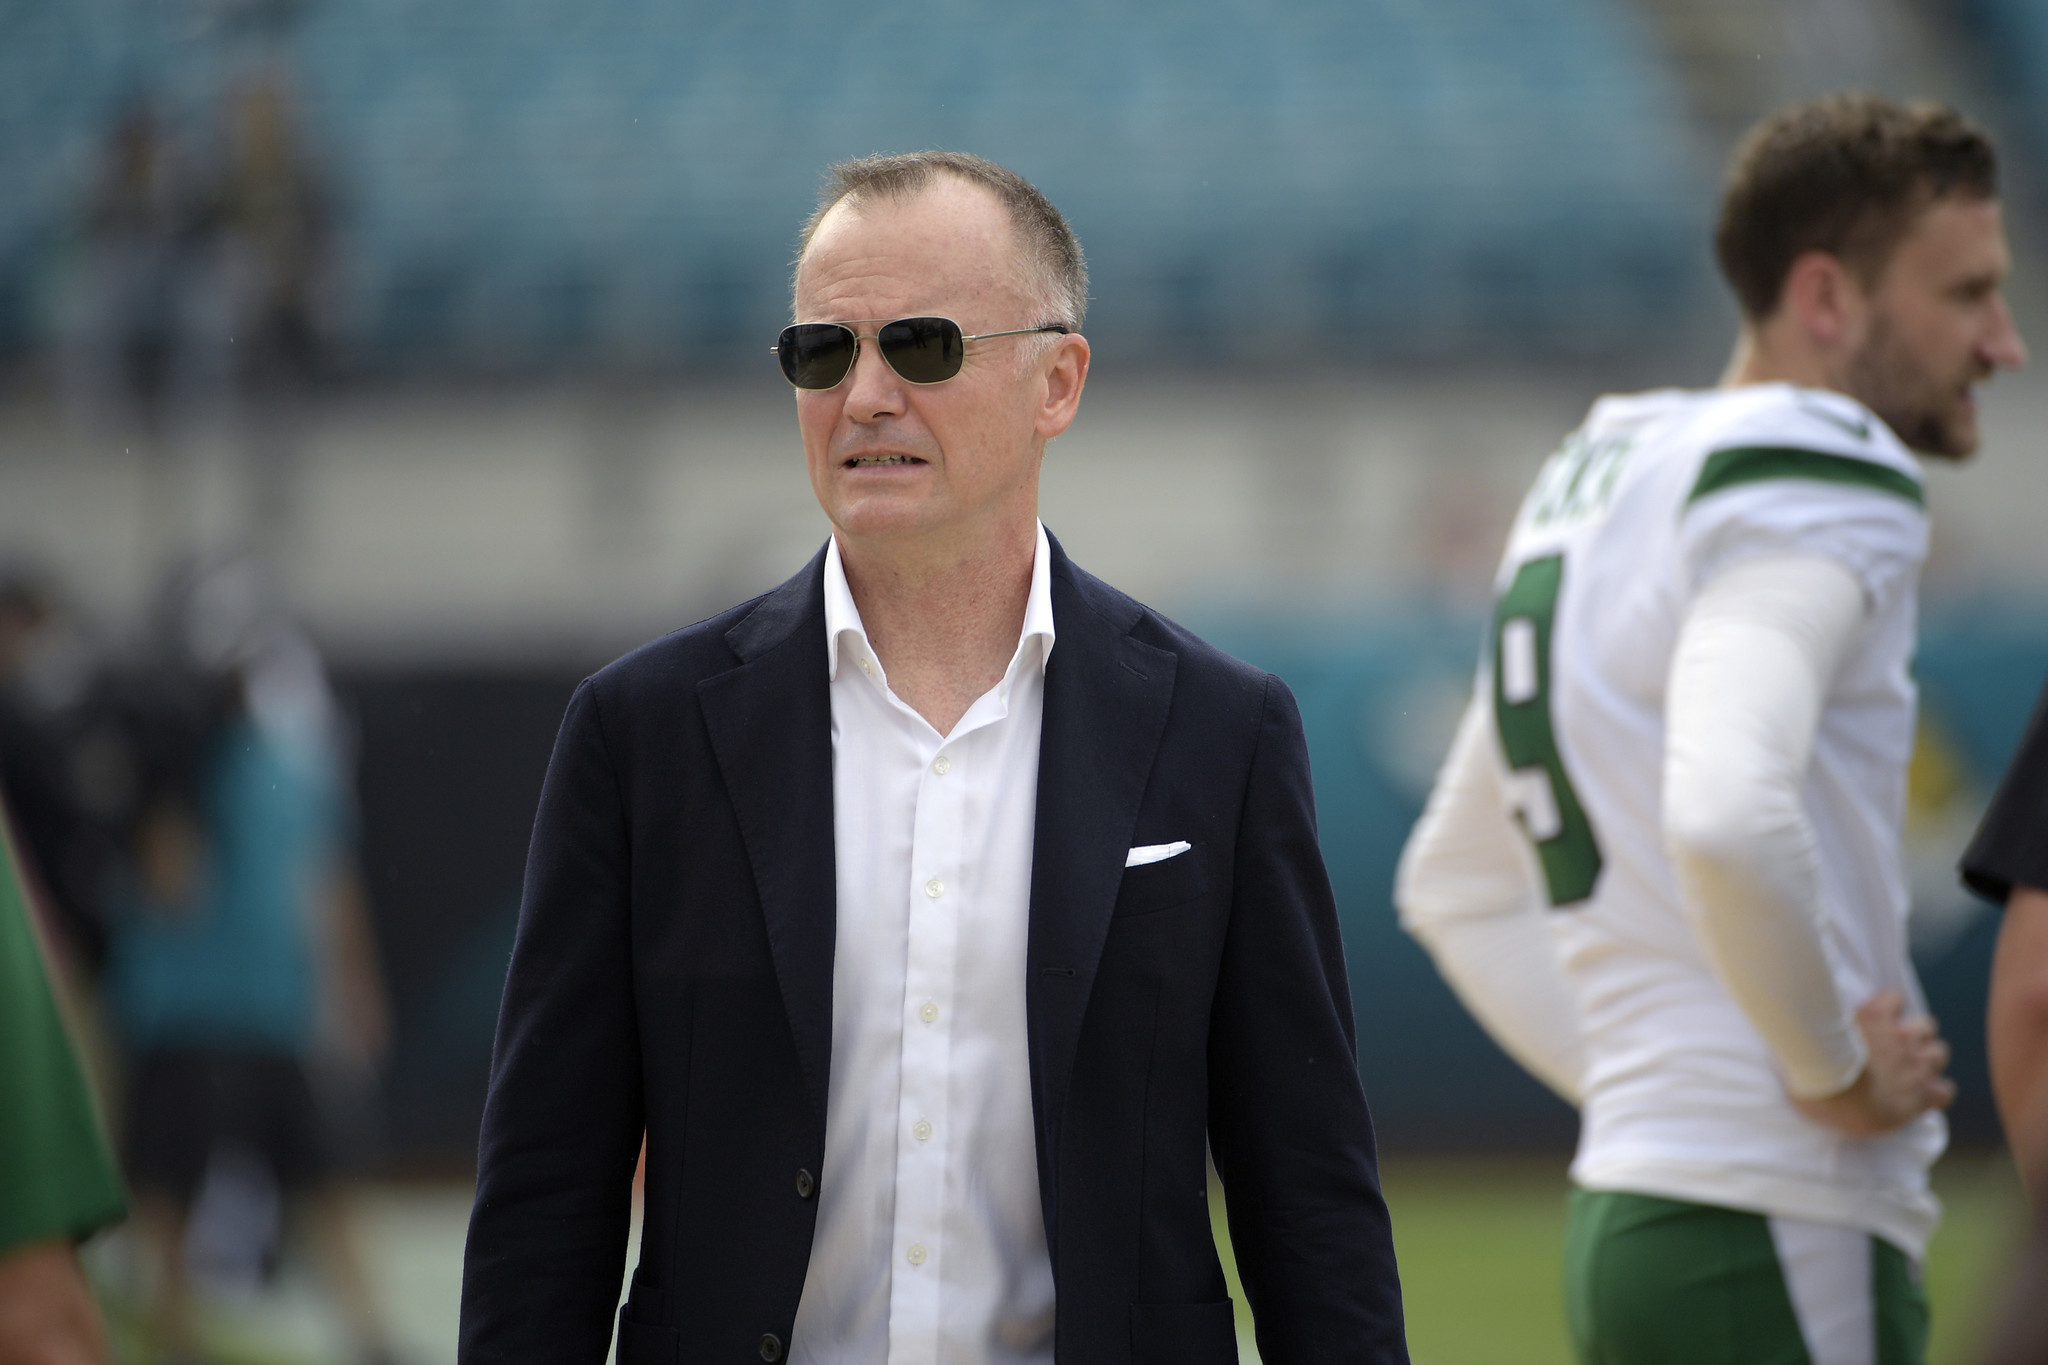 Christopher Johnson throws Adam Gase and rest of Jets under the bus by questioning their competitiveness